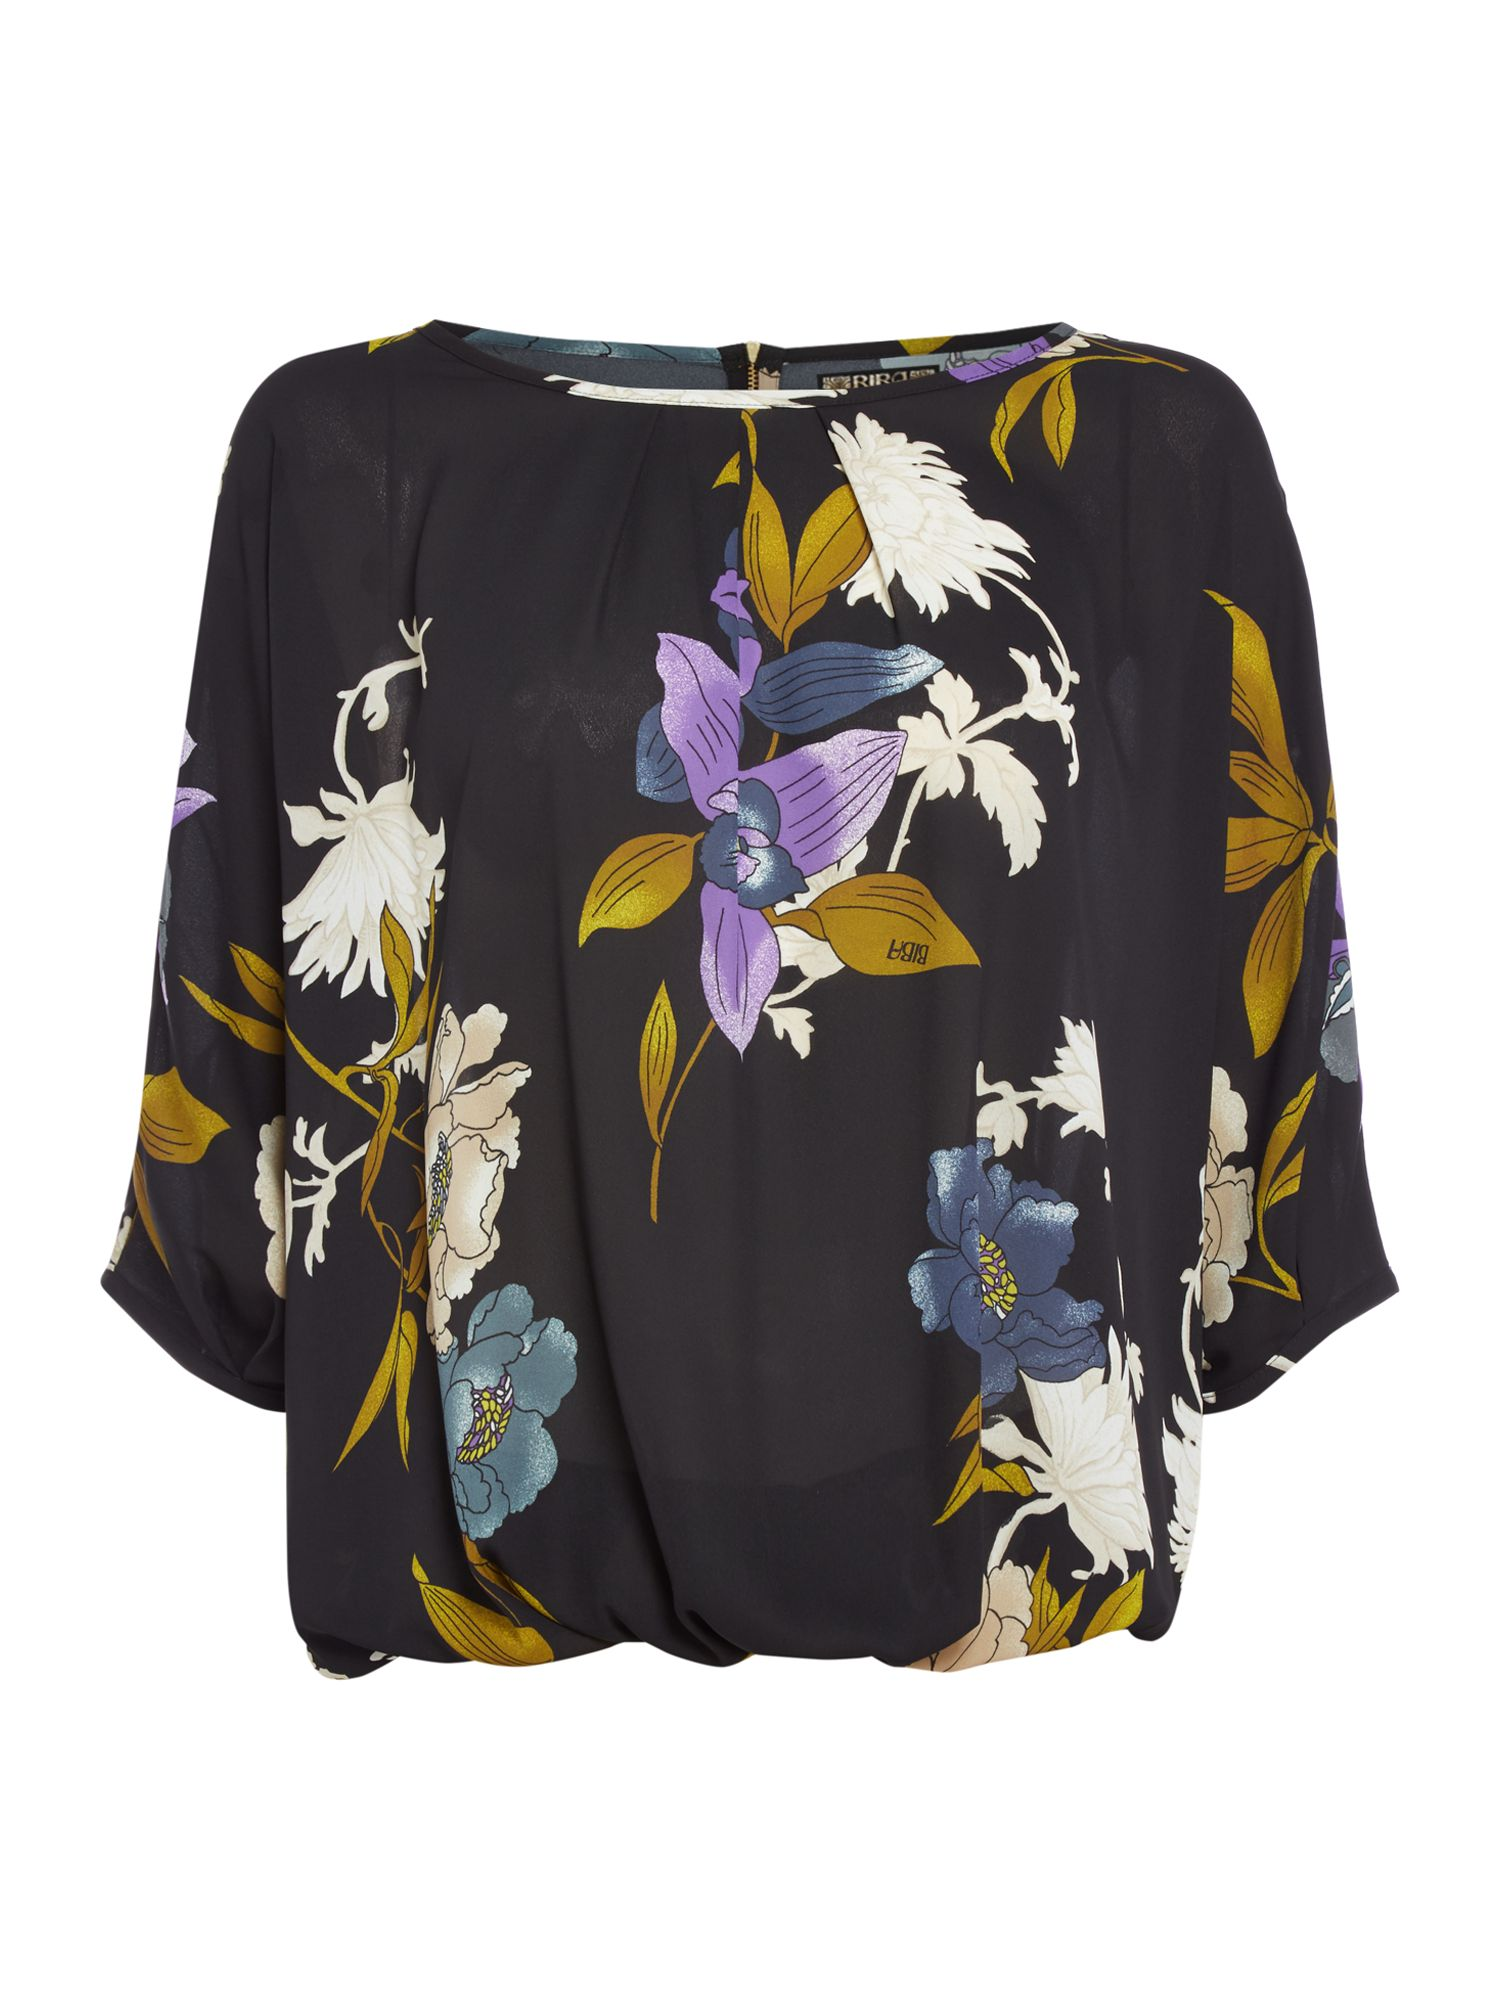 Biba Volume printed floral blouse, Multi-Coloured